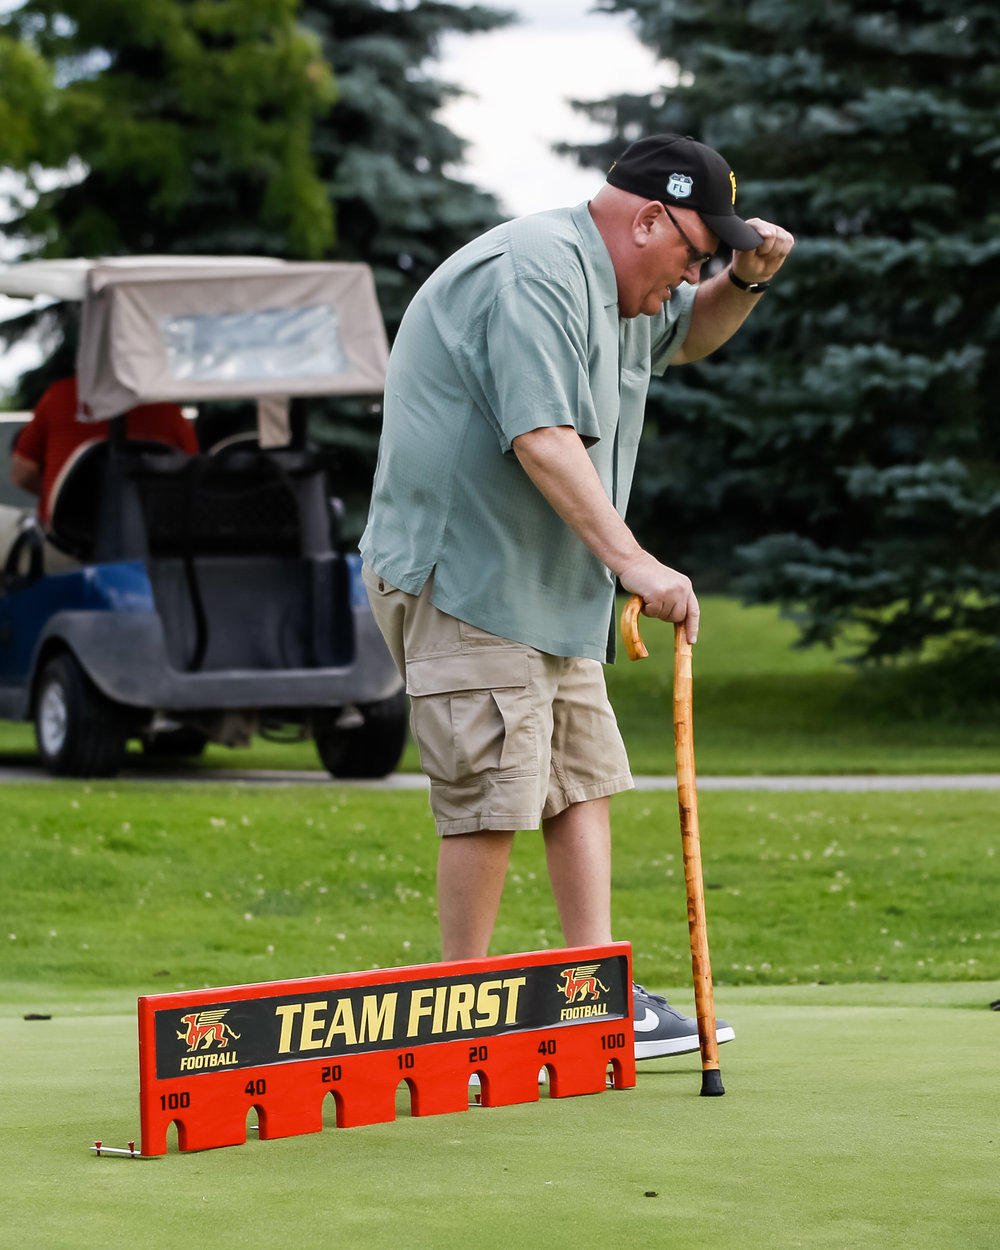 Gryphon Football Golf Tourney July 27 2018_019.JPG